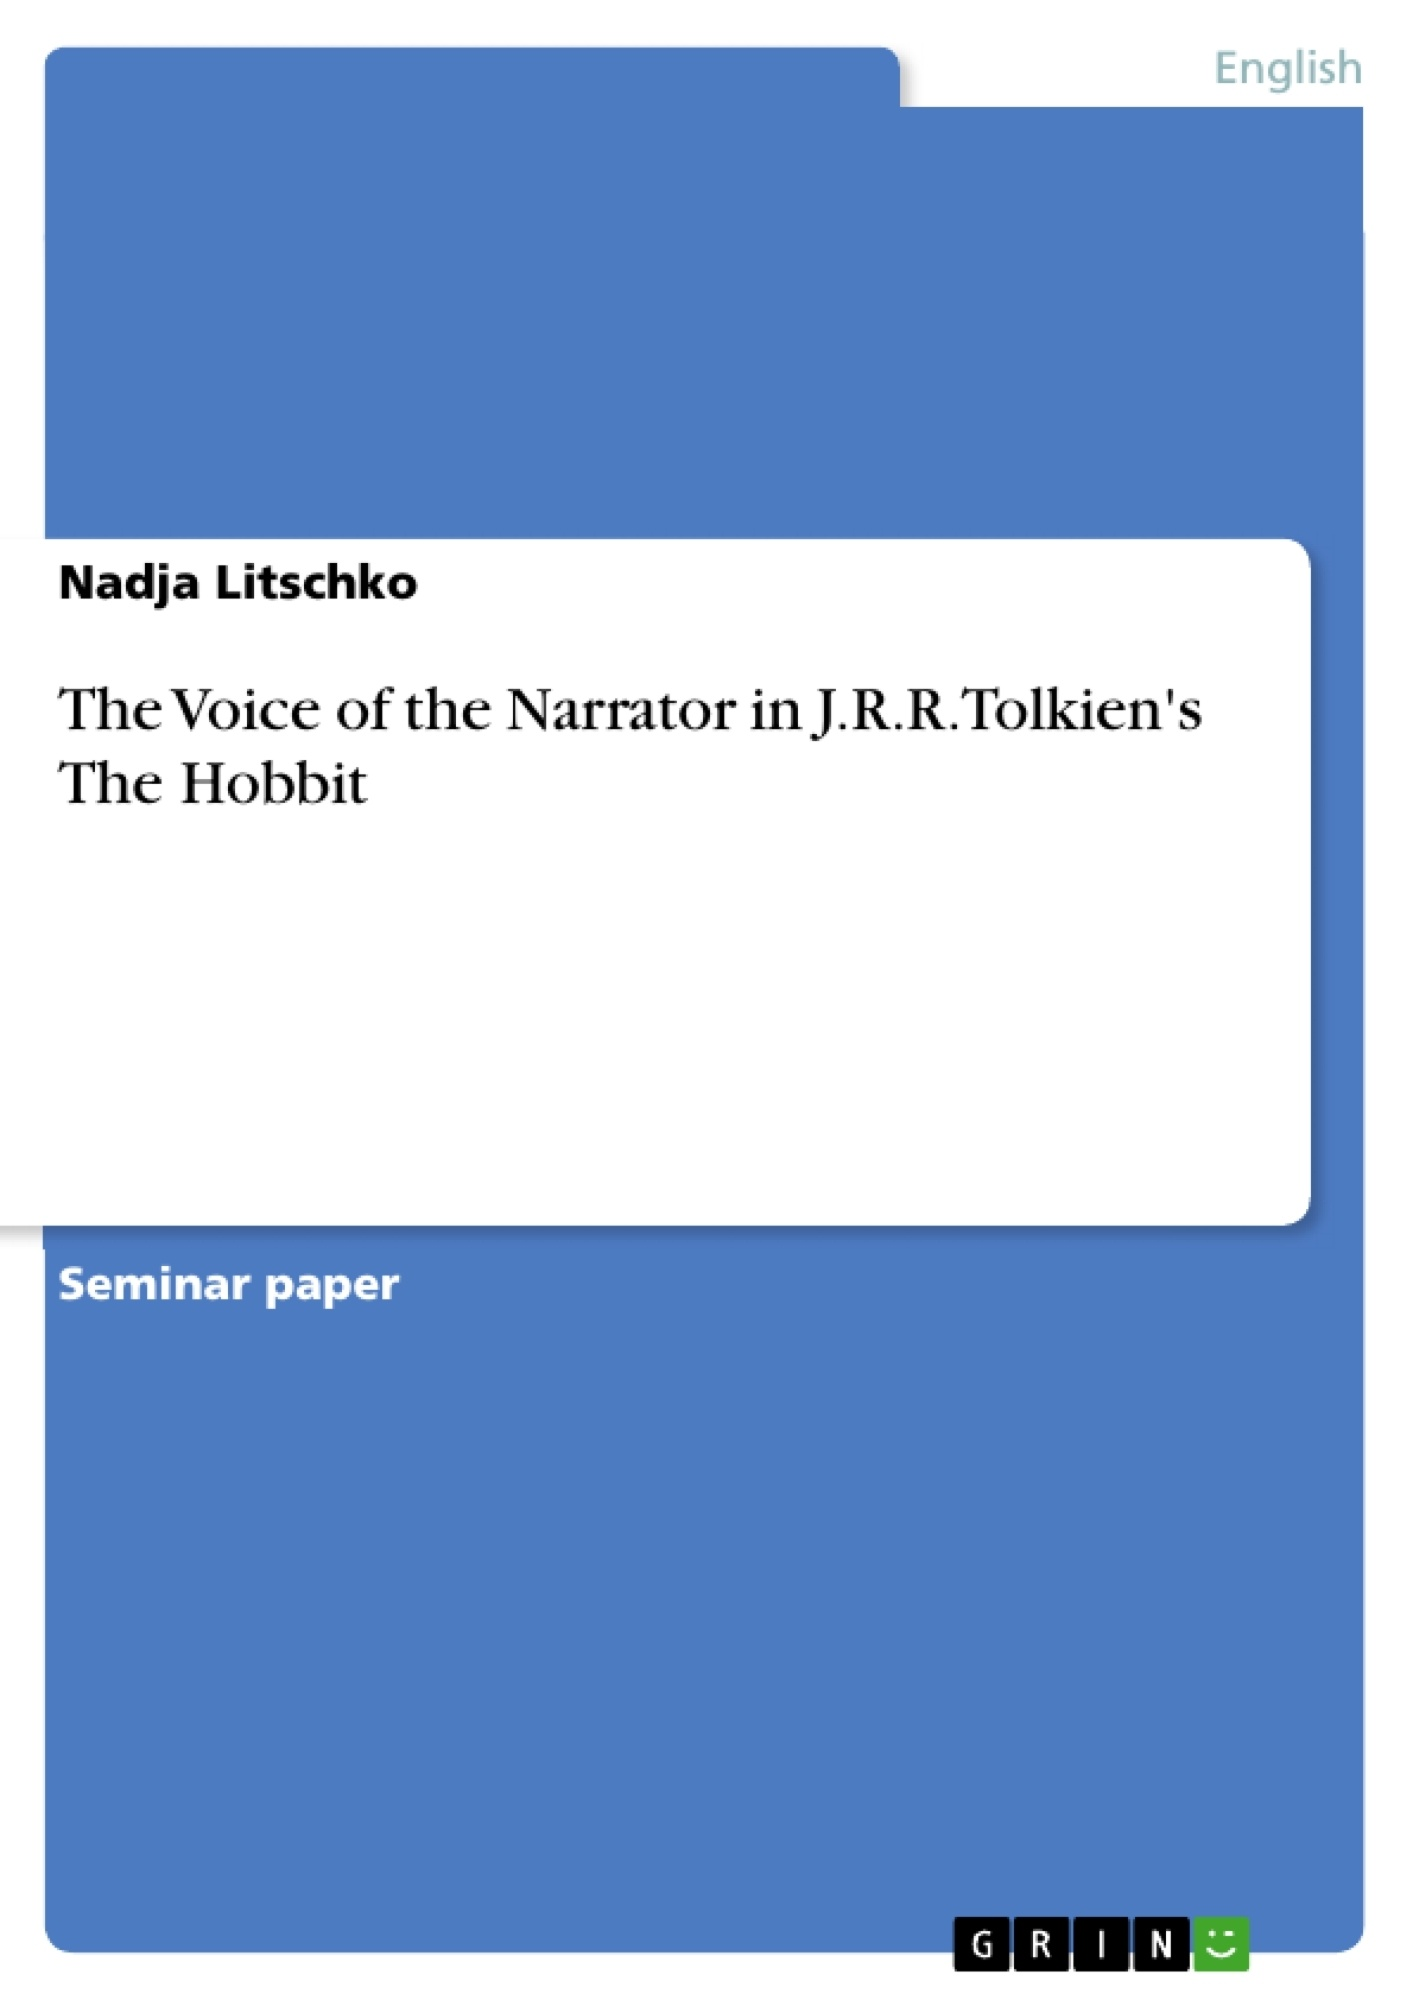 Title: The Voice of the Narrator in J.R.R. Tolkien's The Hobbit